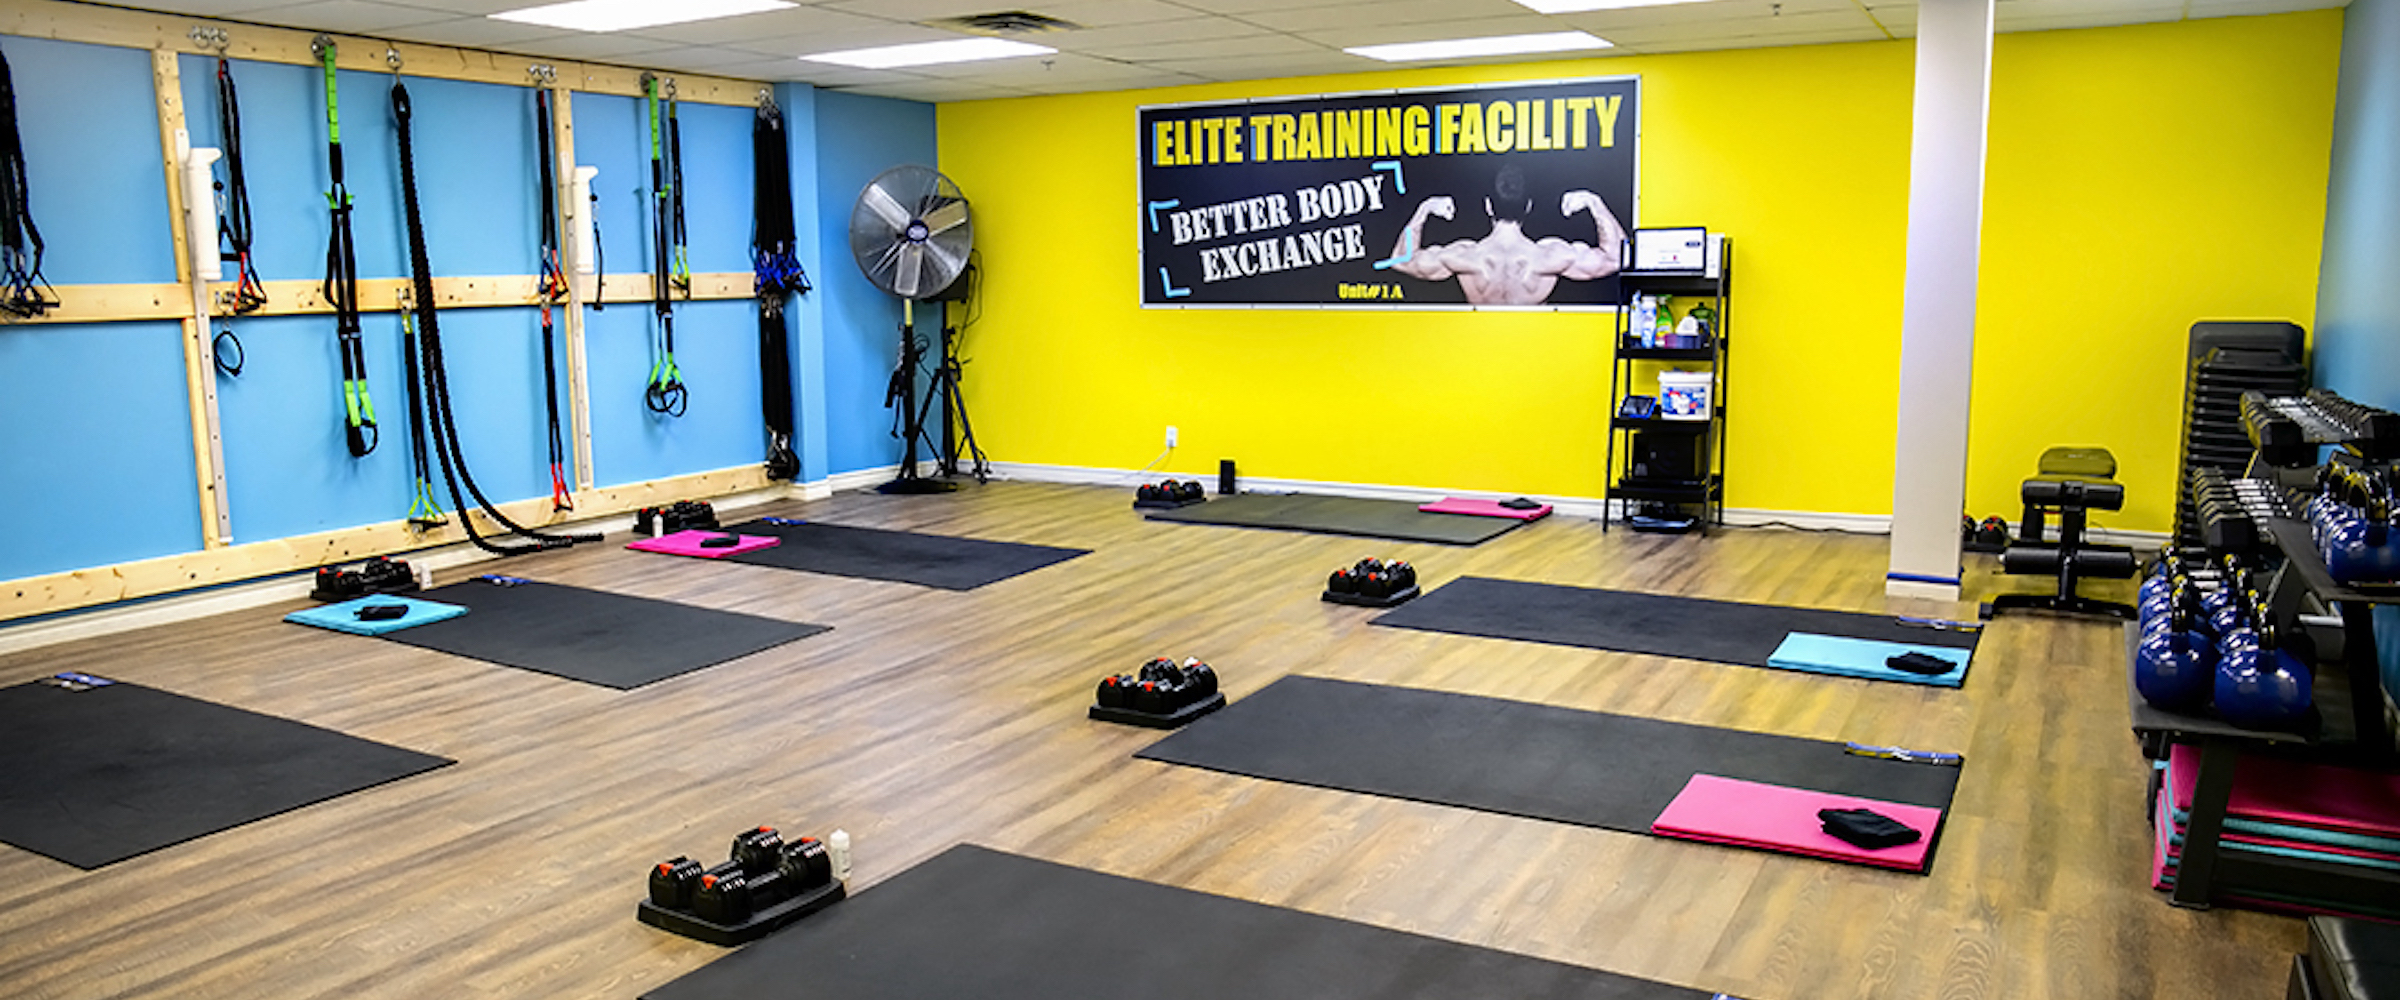 Come and Visit Us at the New Elite Training Facility Location